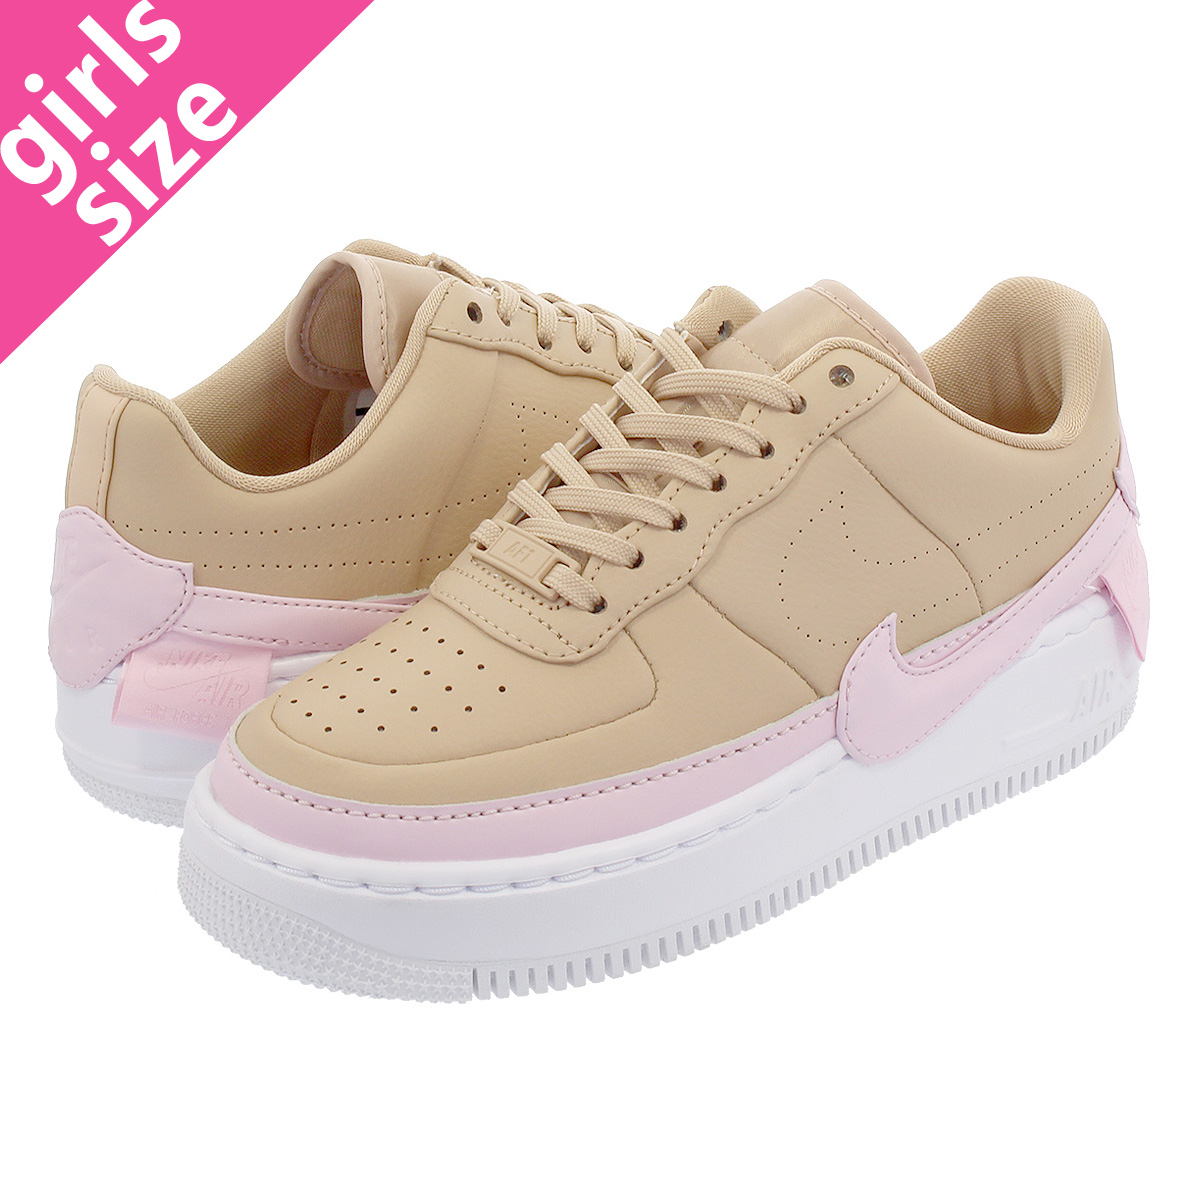 best service 549f3 578f8 NIKE WMNS AIR FORCE 1 JESTER XX Nike women air force 1 Jester XX BIO  BEIGE/PINK FORCE/WHITE ao1220-202